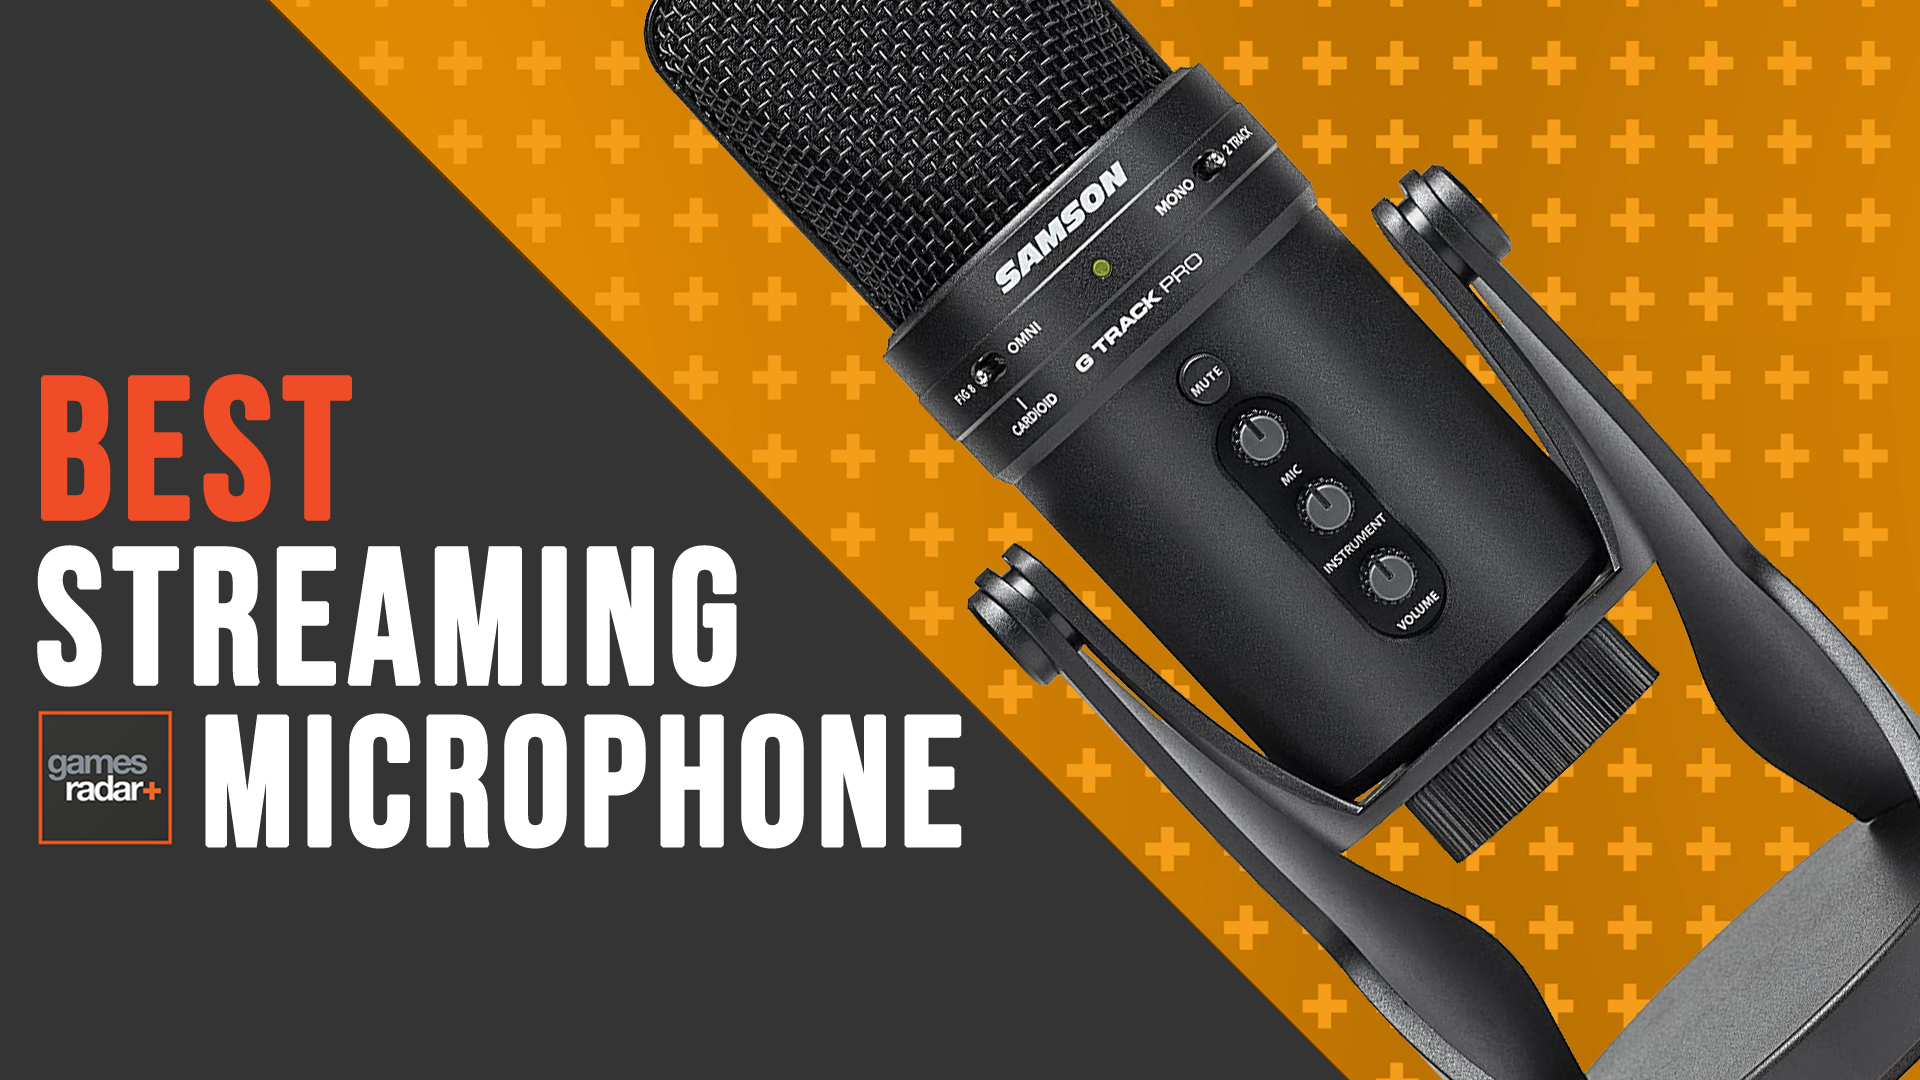 Best Streaming Microphone 2021 Best microphones for streaming and gaming | GamesRadar+